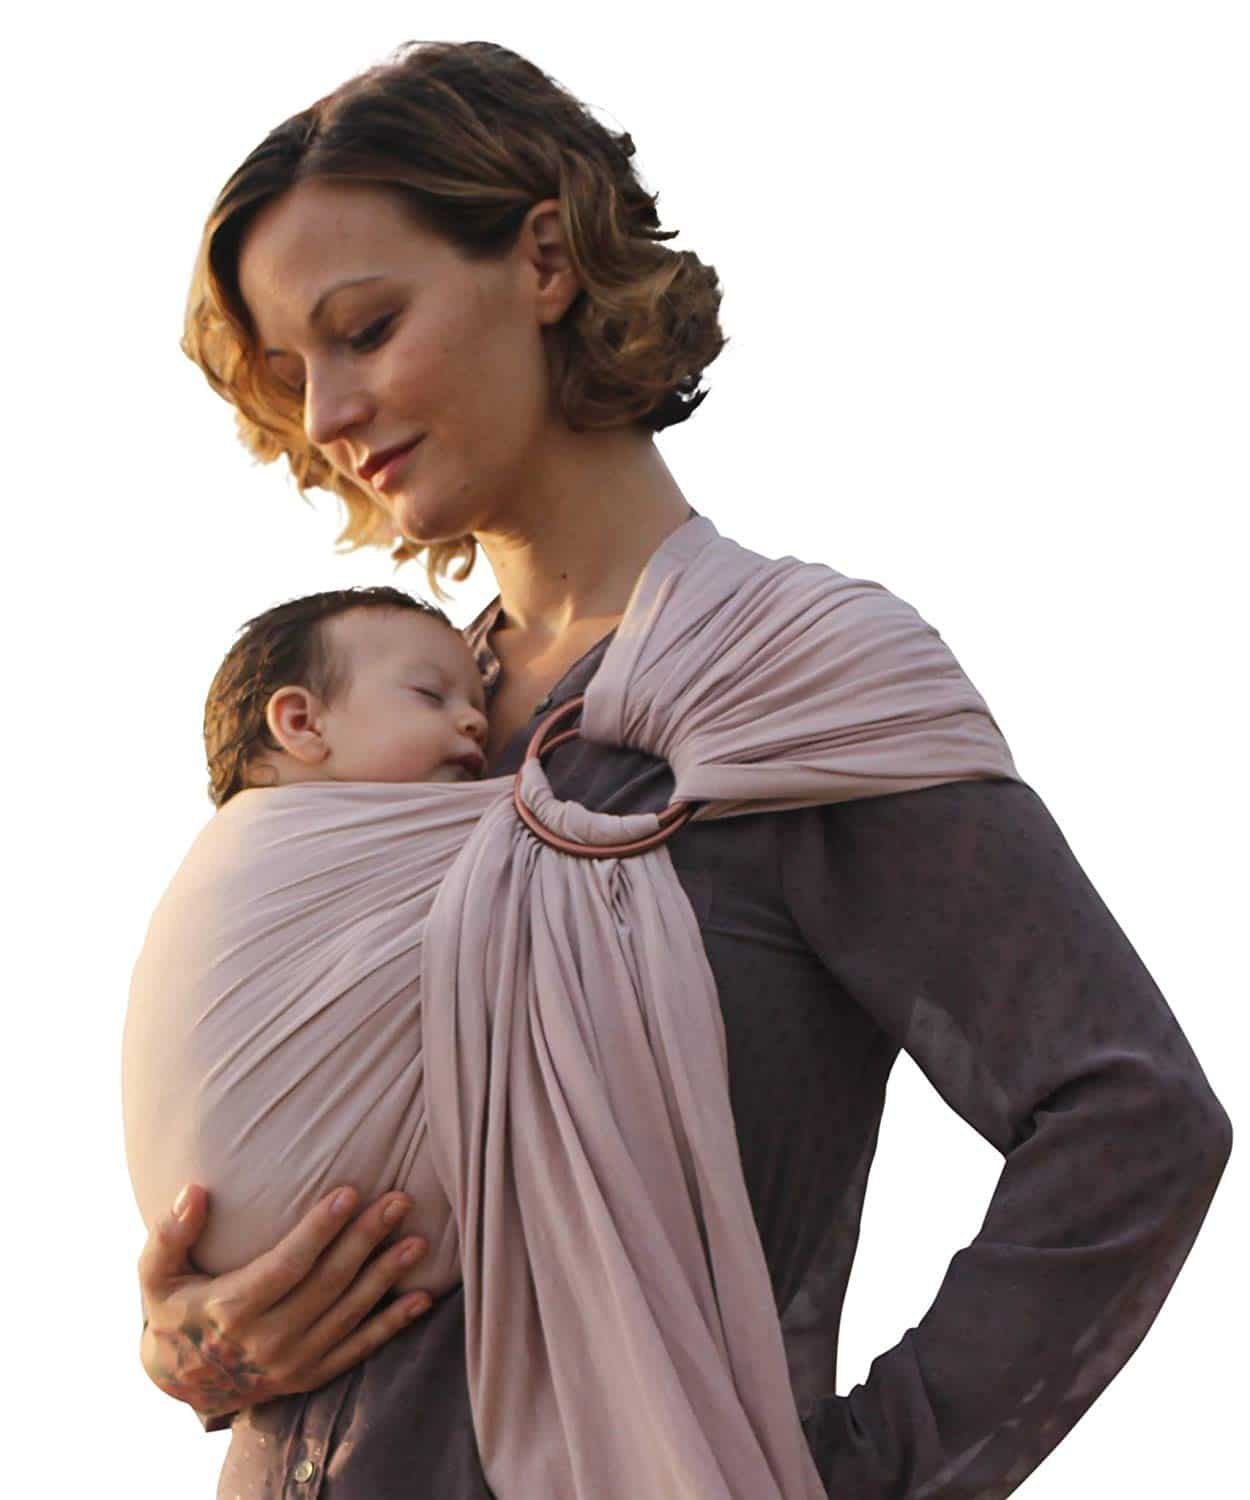 Luxury Ring Sling Baby Carrier  extra-soft bamboo and linen fabric - lightweight wrap - for newborns, infants and toddlers - perfect baby shower gift  great for new Dad too - nursing cover